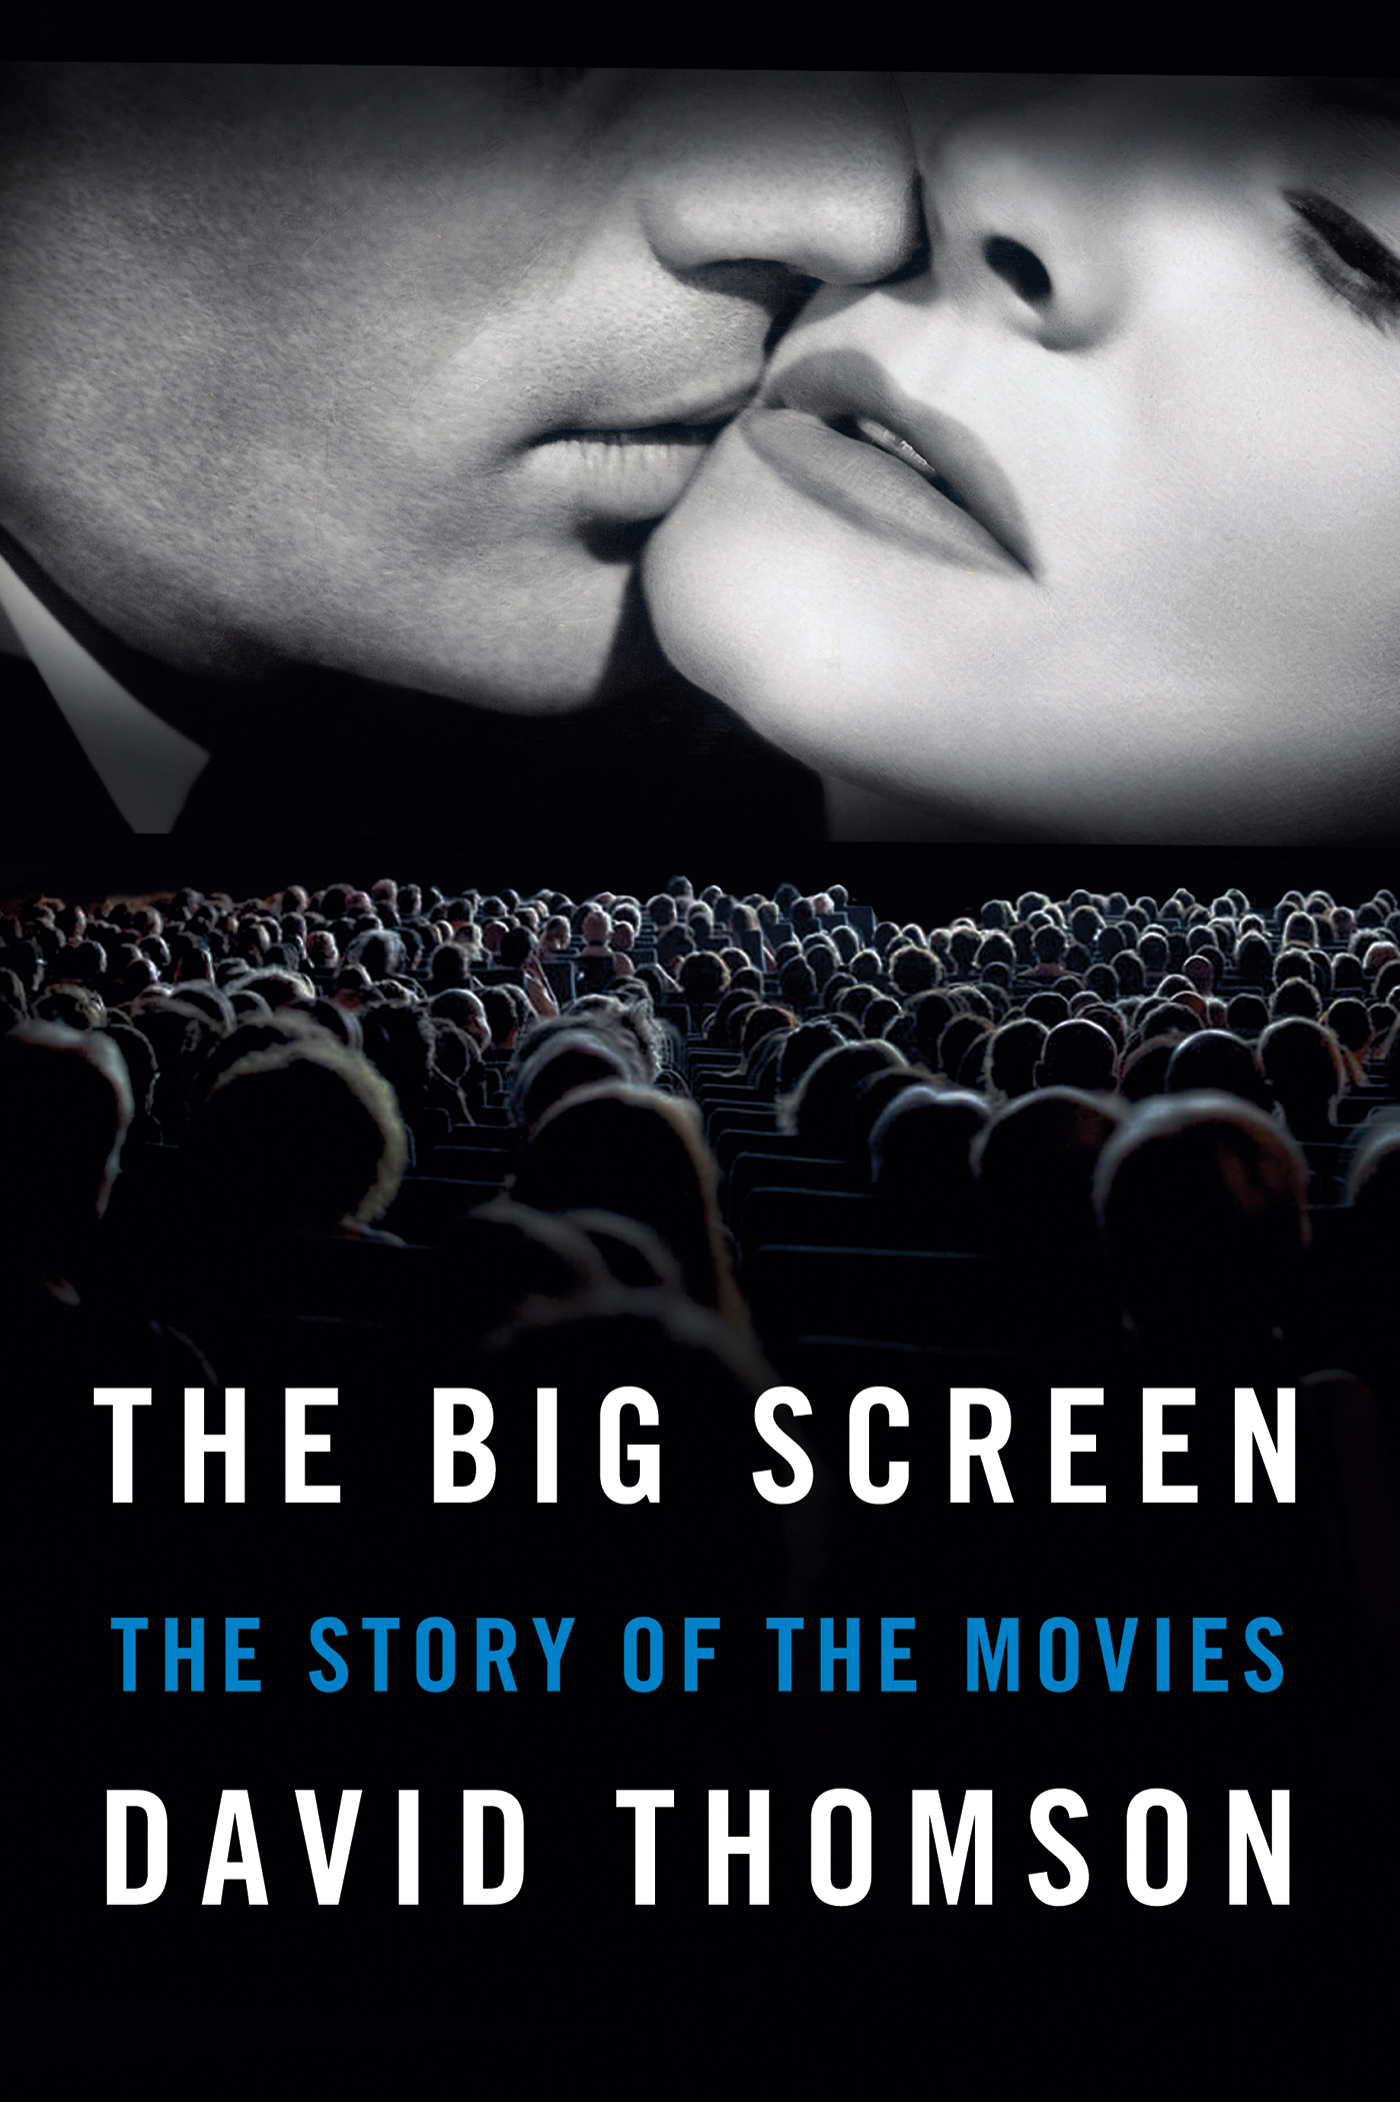 The Big Screen By: David Thomson